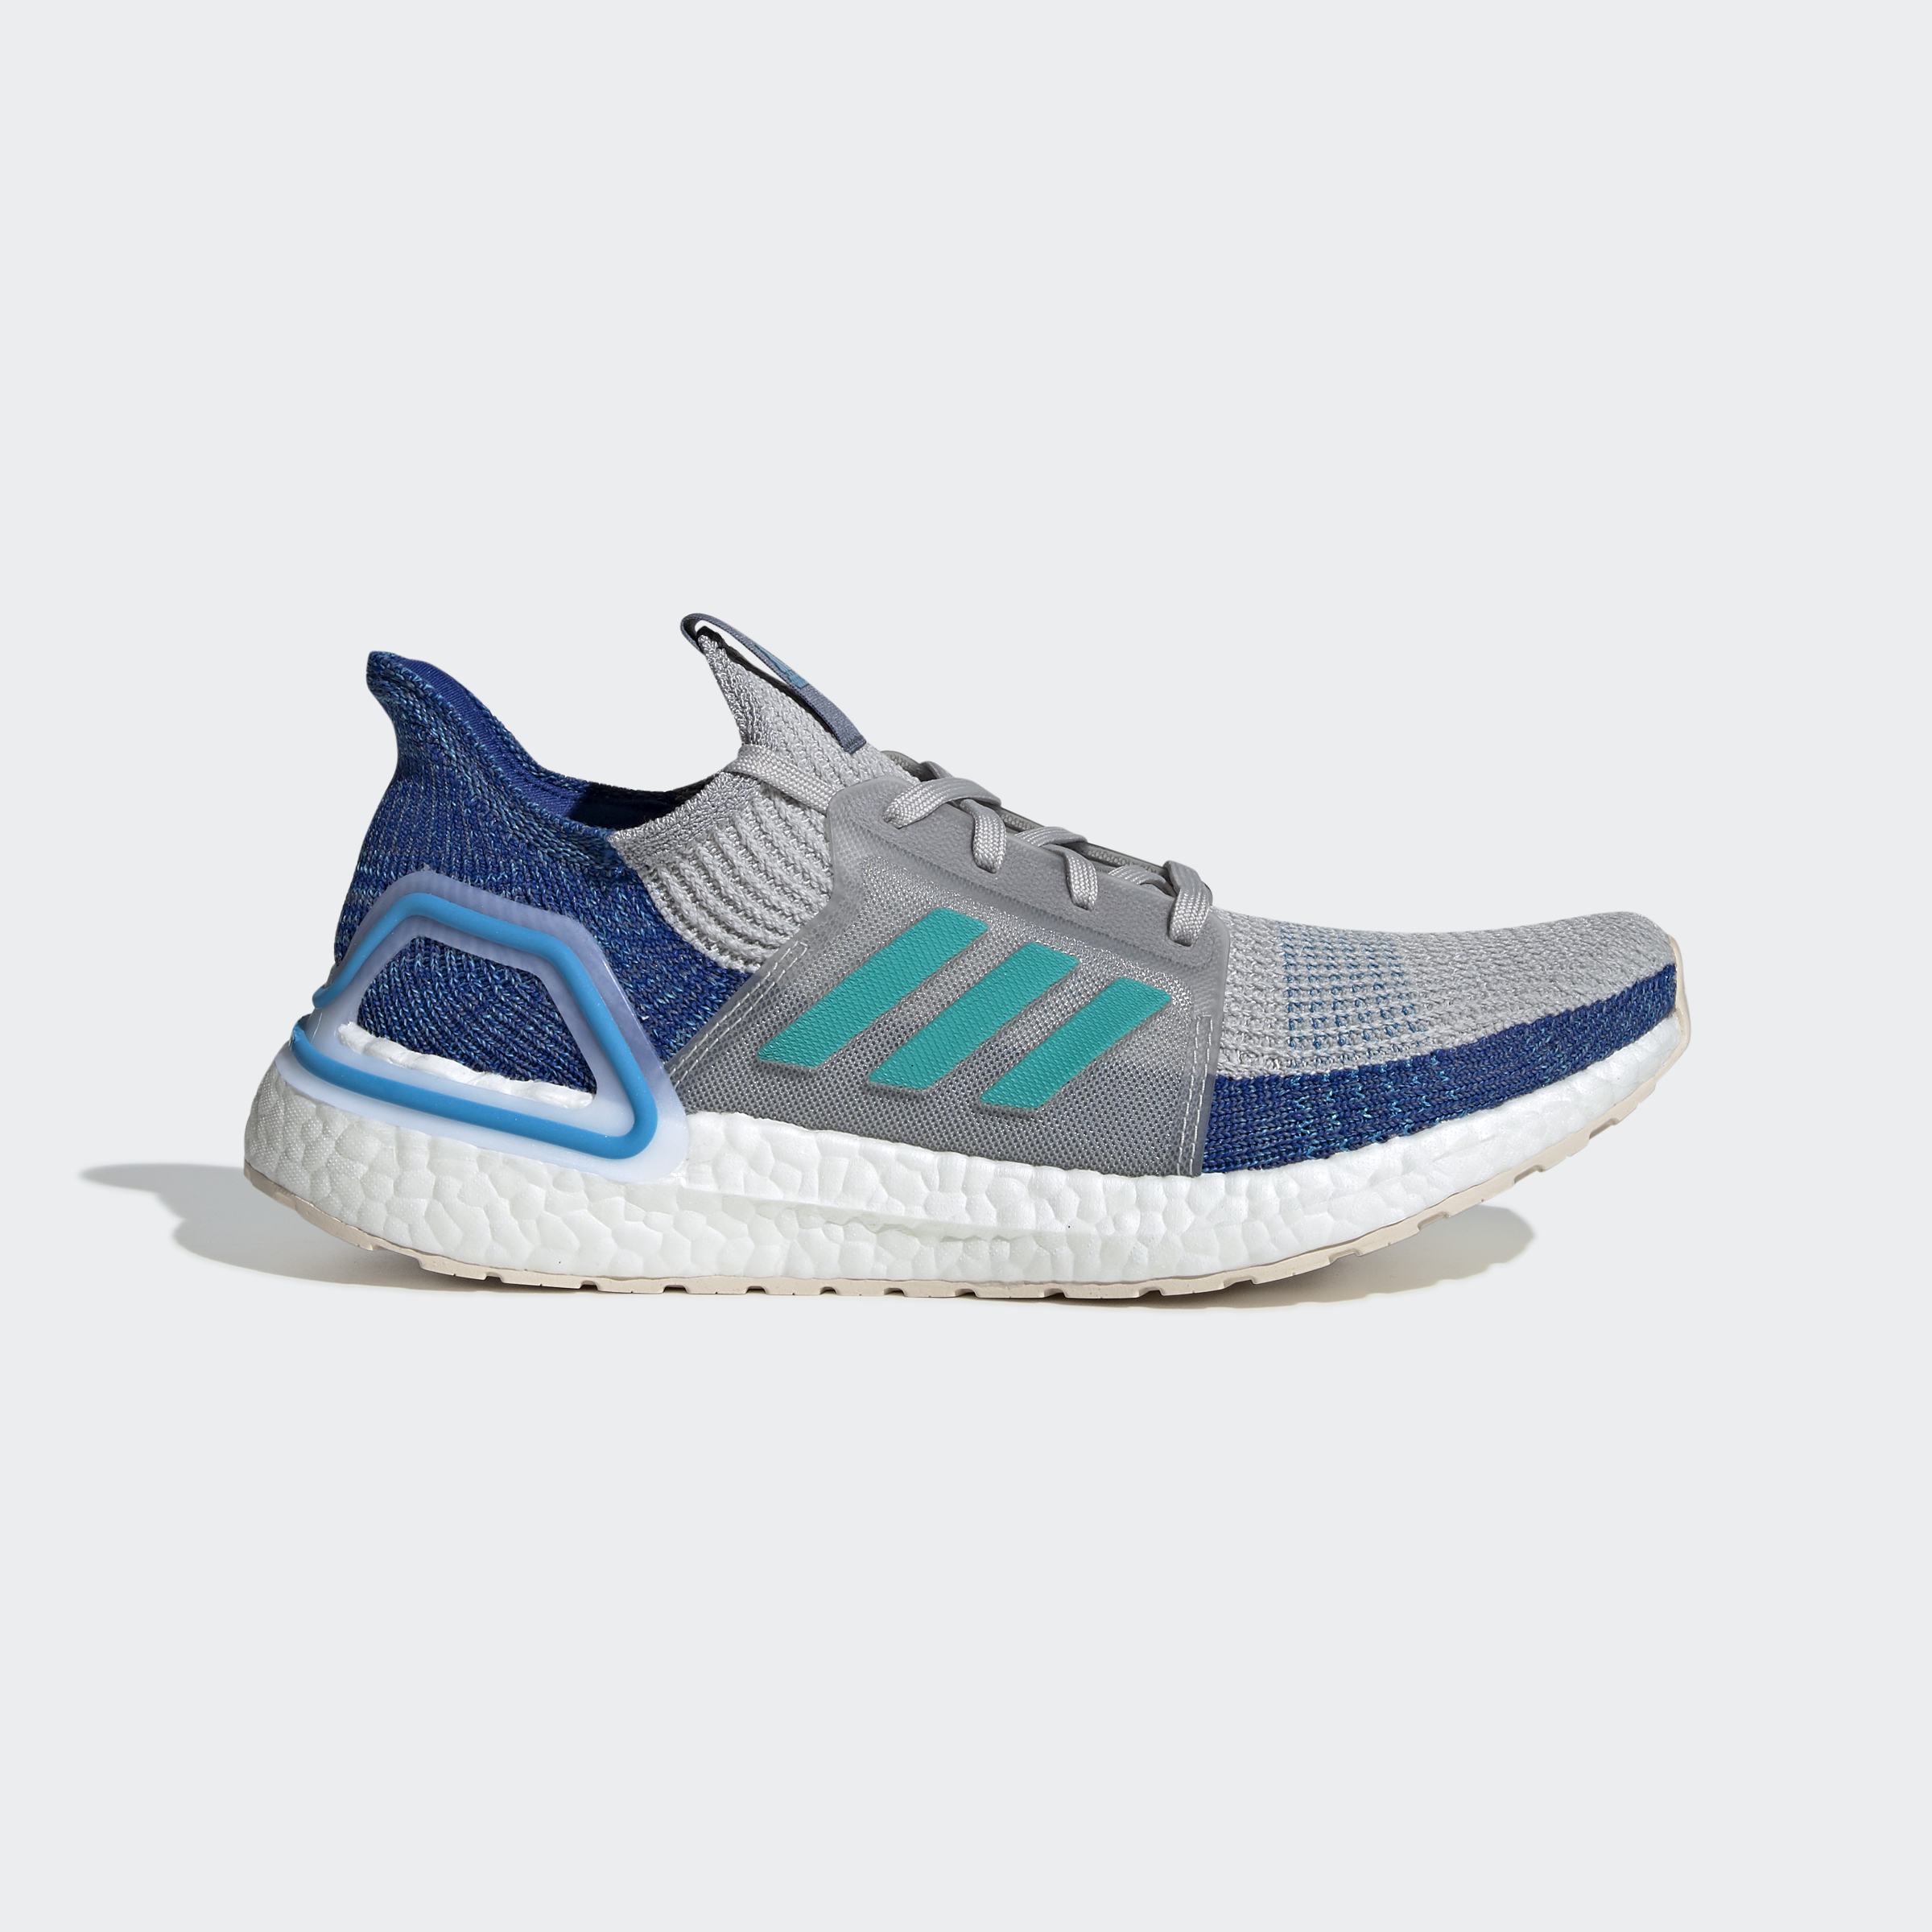 adidas-Ultraboost-19-Shoes-Athletic-amp-Sneakers thumbnail 36